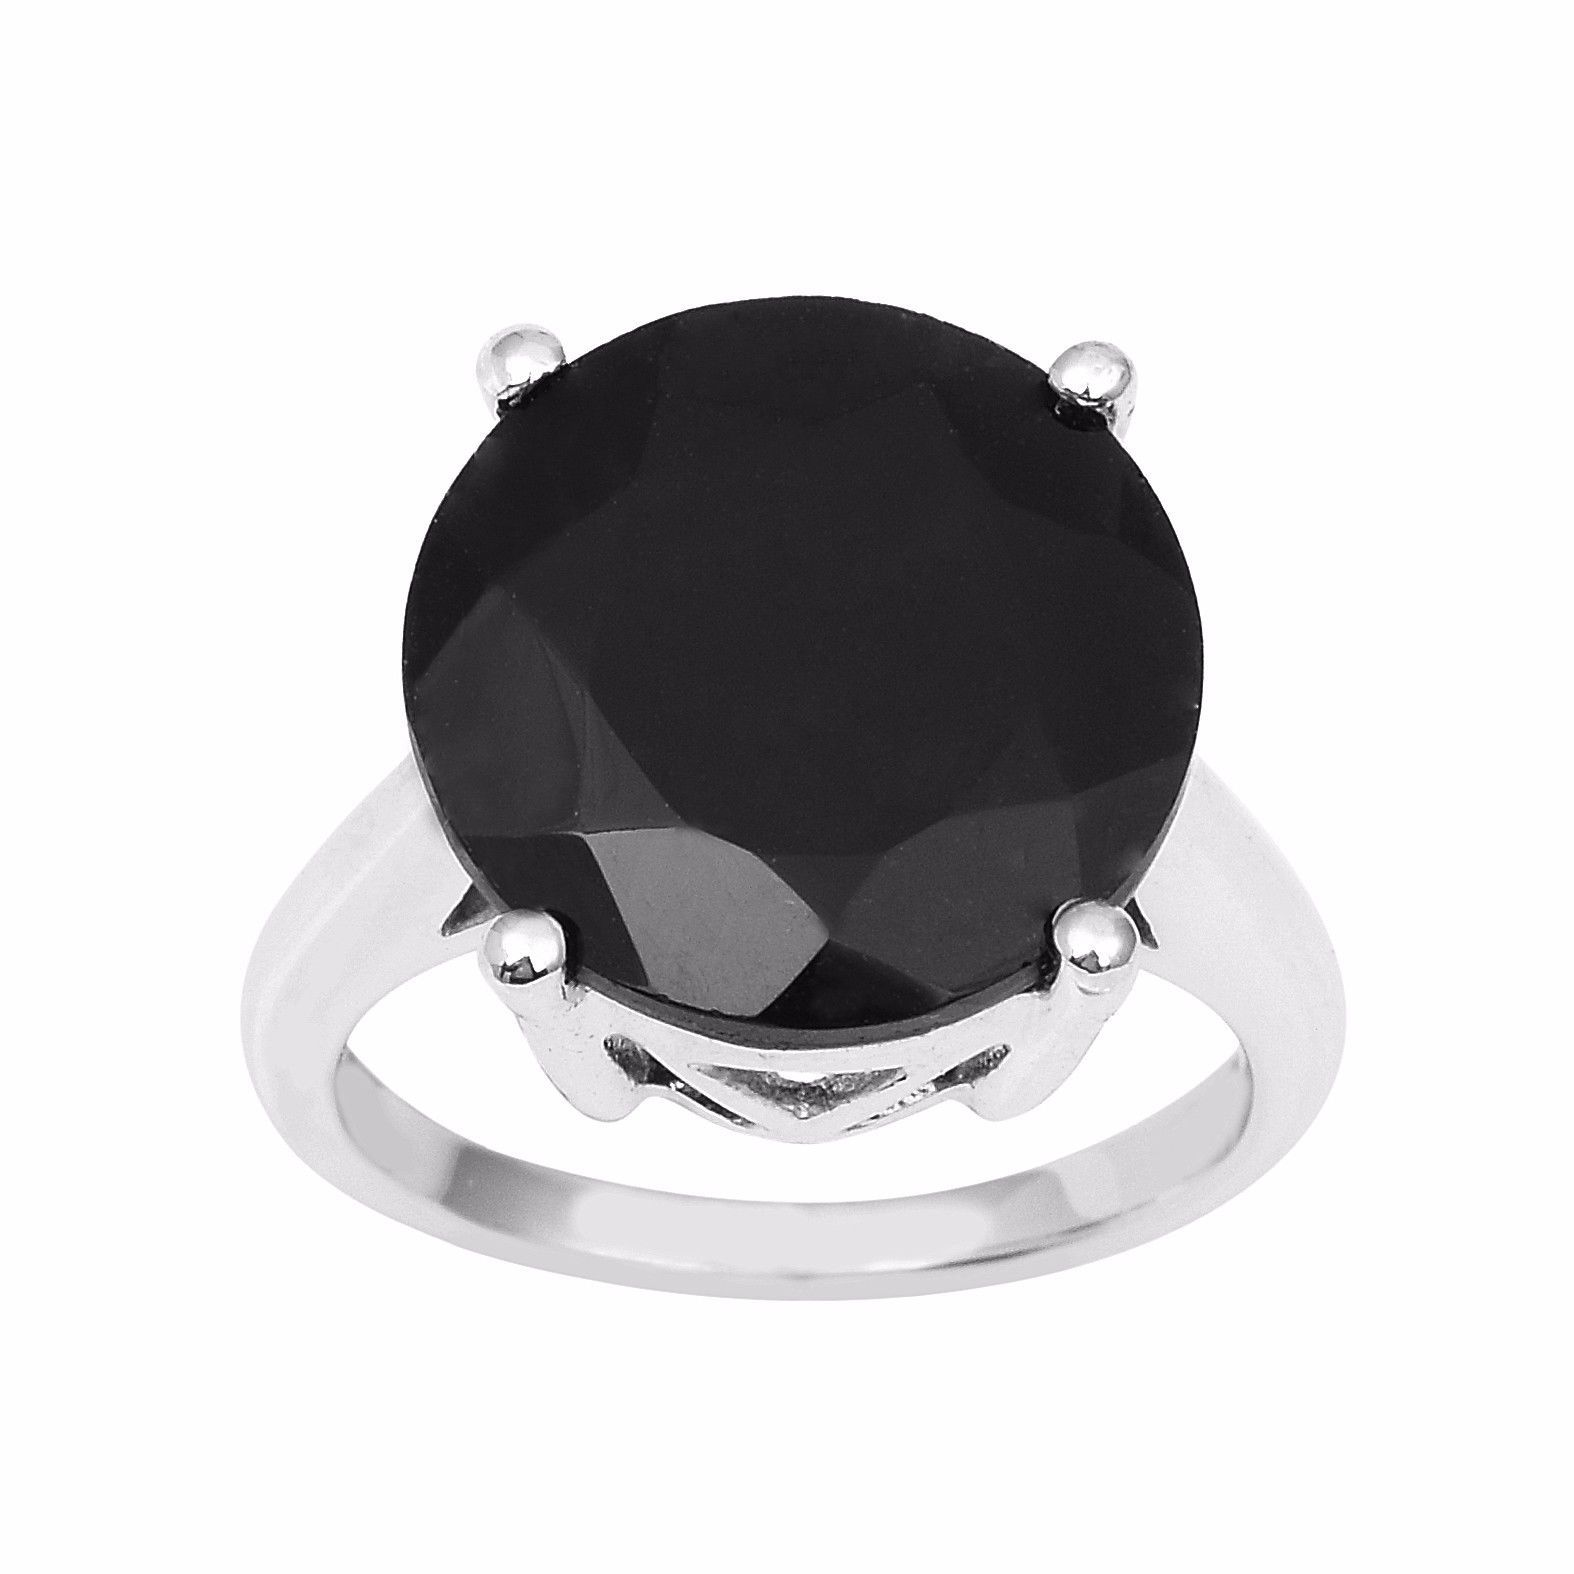 7.90 Carat Shining Black Spinel Solid Gemstone 925 Sterling Ring Sz 7 SHRI0911